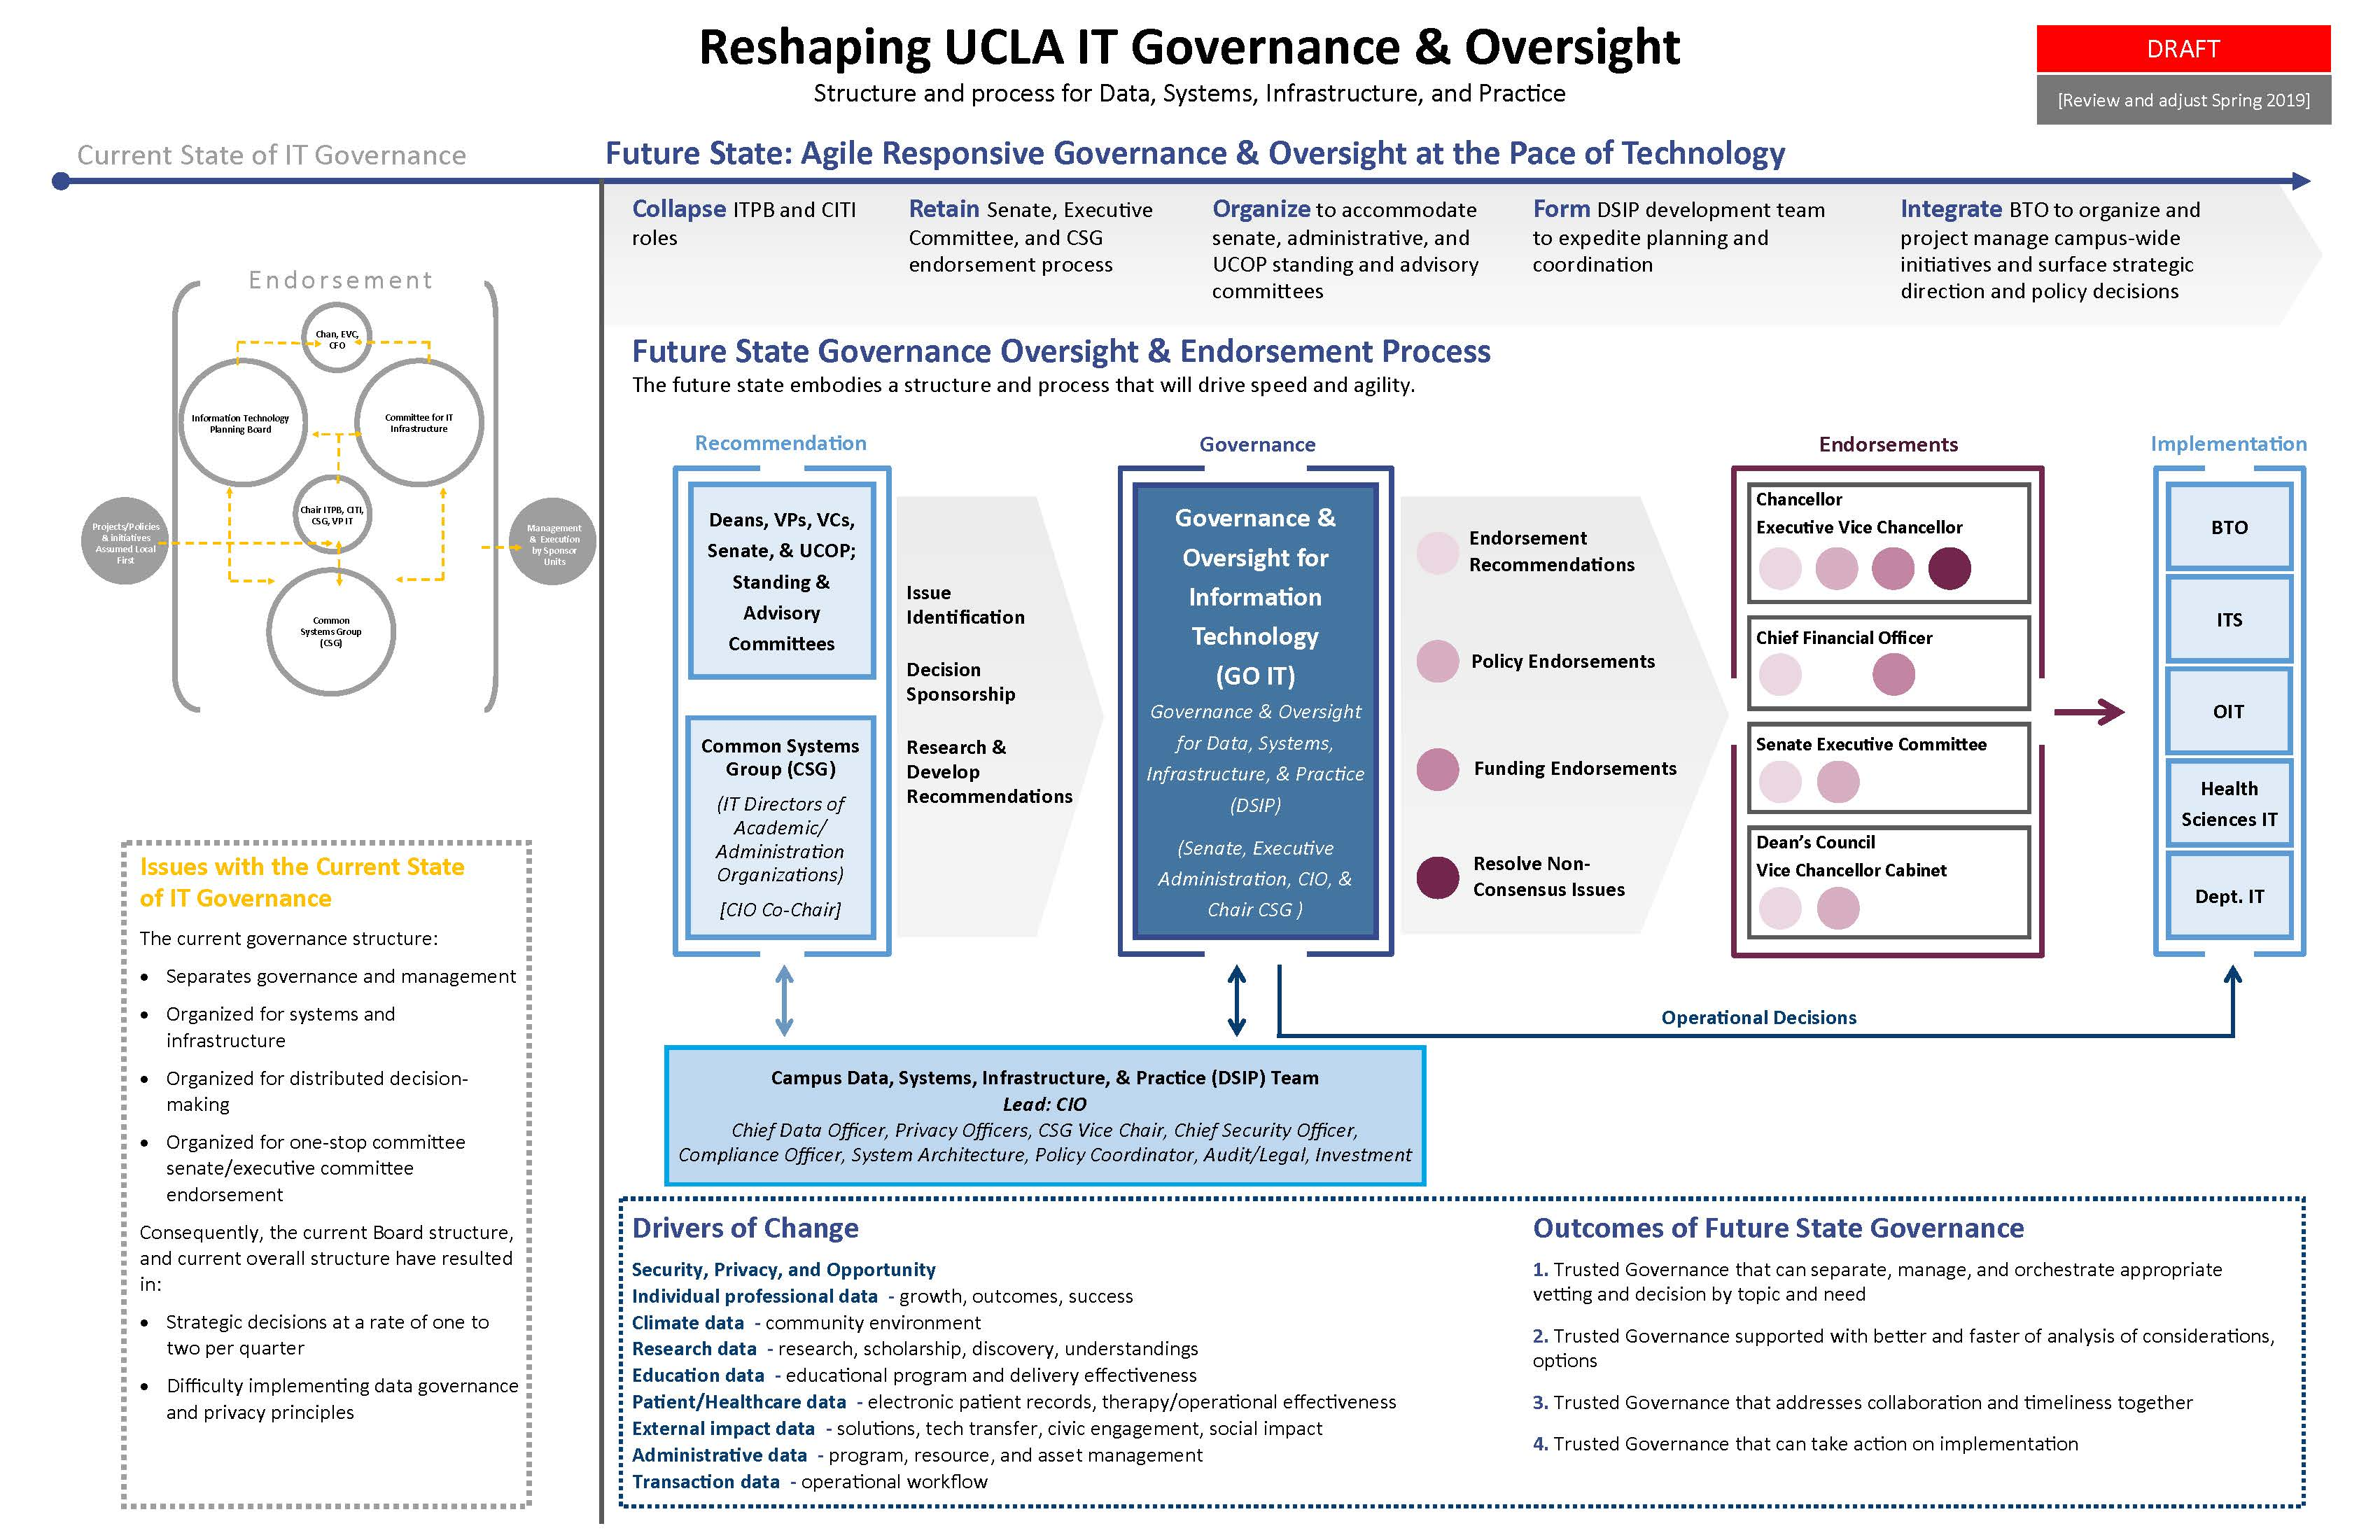 Image is of a flowchart of the governance review process